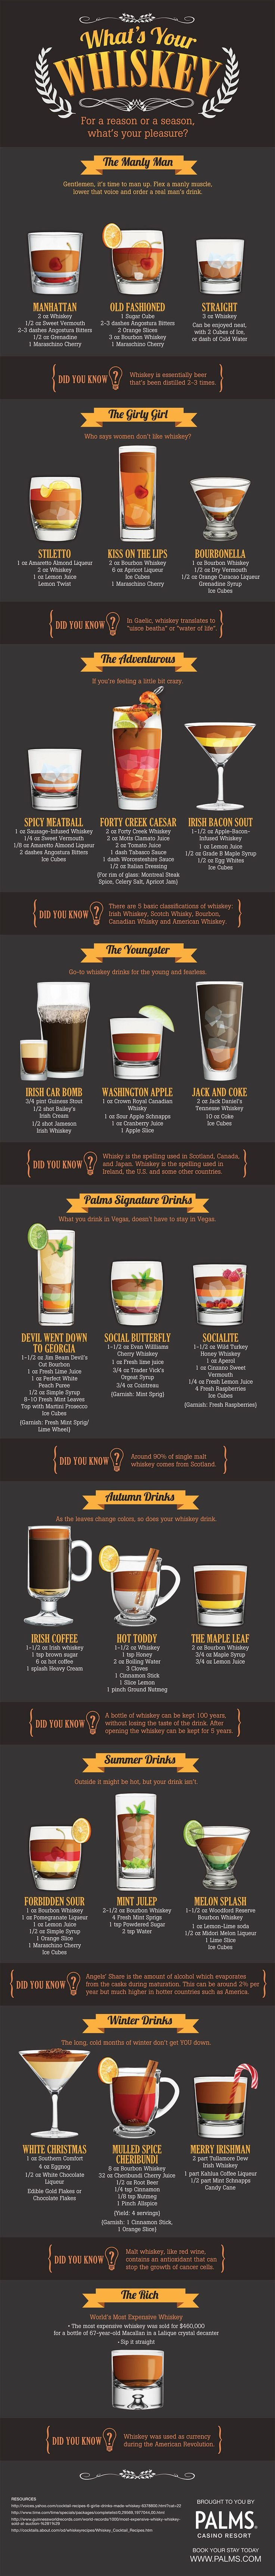 What's Your Whiskey? [Infographic] As the holidays approach, enjoy the cold nights with a classic hot toddy in hand, or warm into your mornings with an Irish coffee. Celebrate your friends with a Jack and Coke or play it cool and sip a Manhattan. #NerdMentor